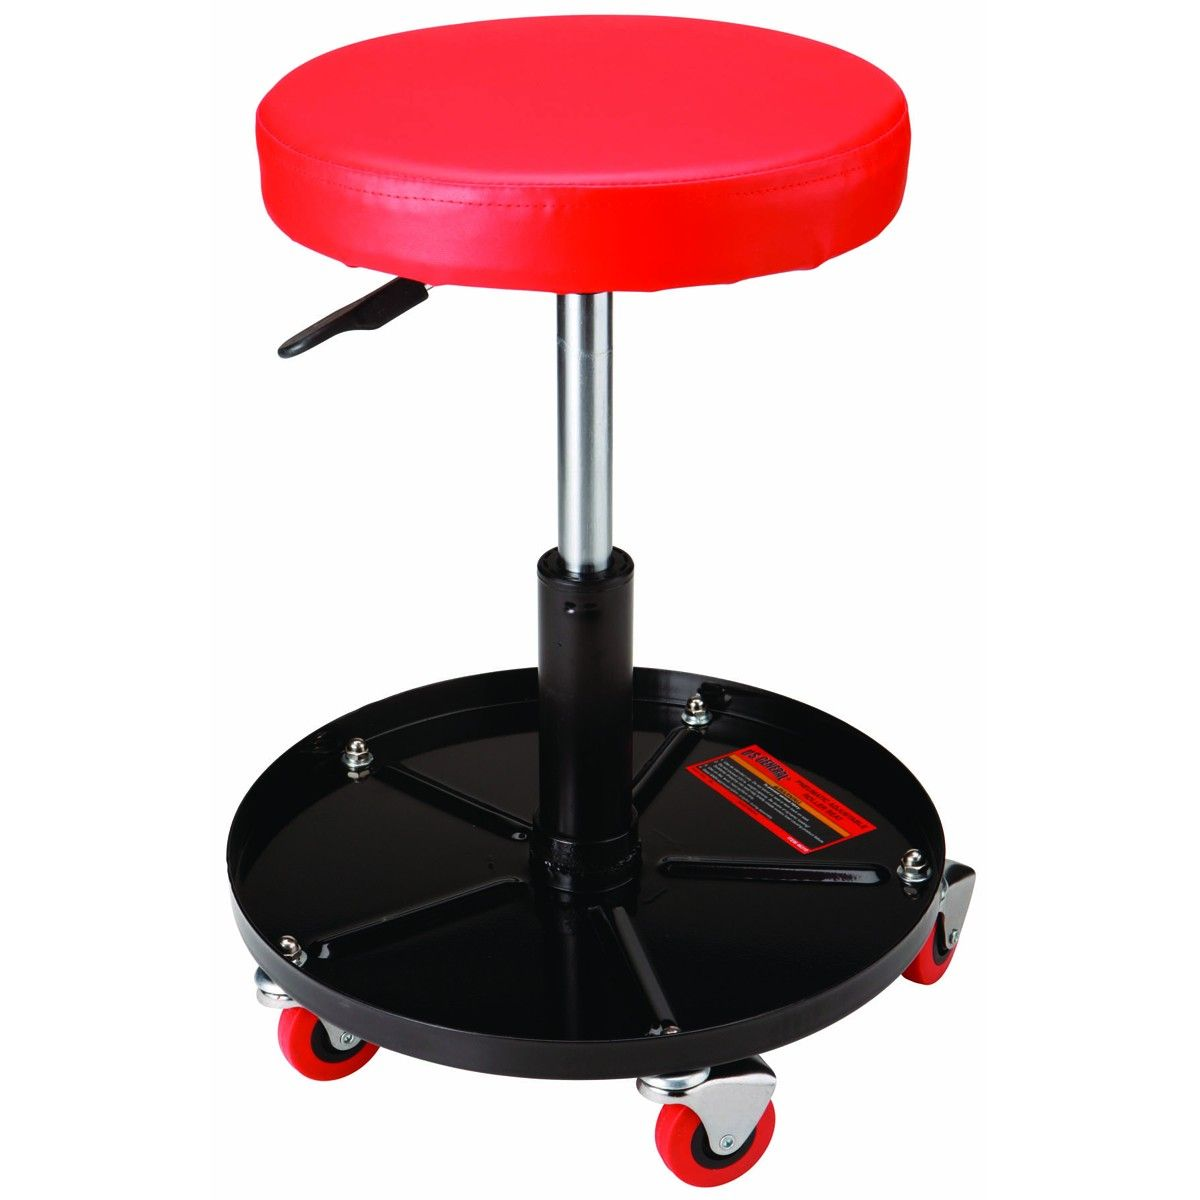 Amazing Pneumatic Roller Seat Stool Restaurant Chairs For Sale Creativecarmelina Interior Chair Design Creativecarmelinacom